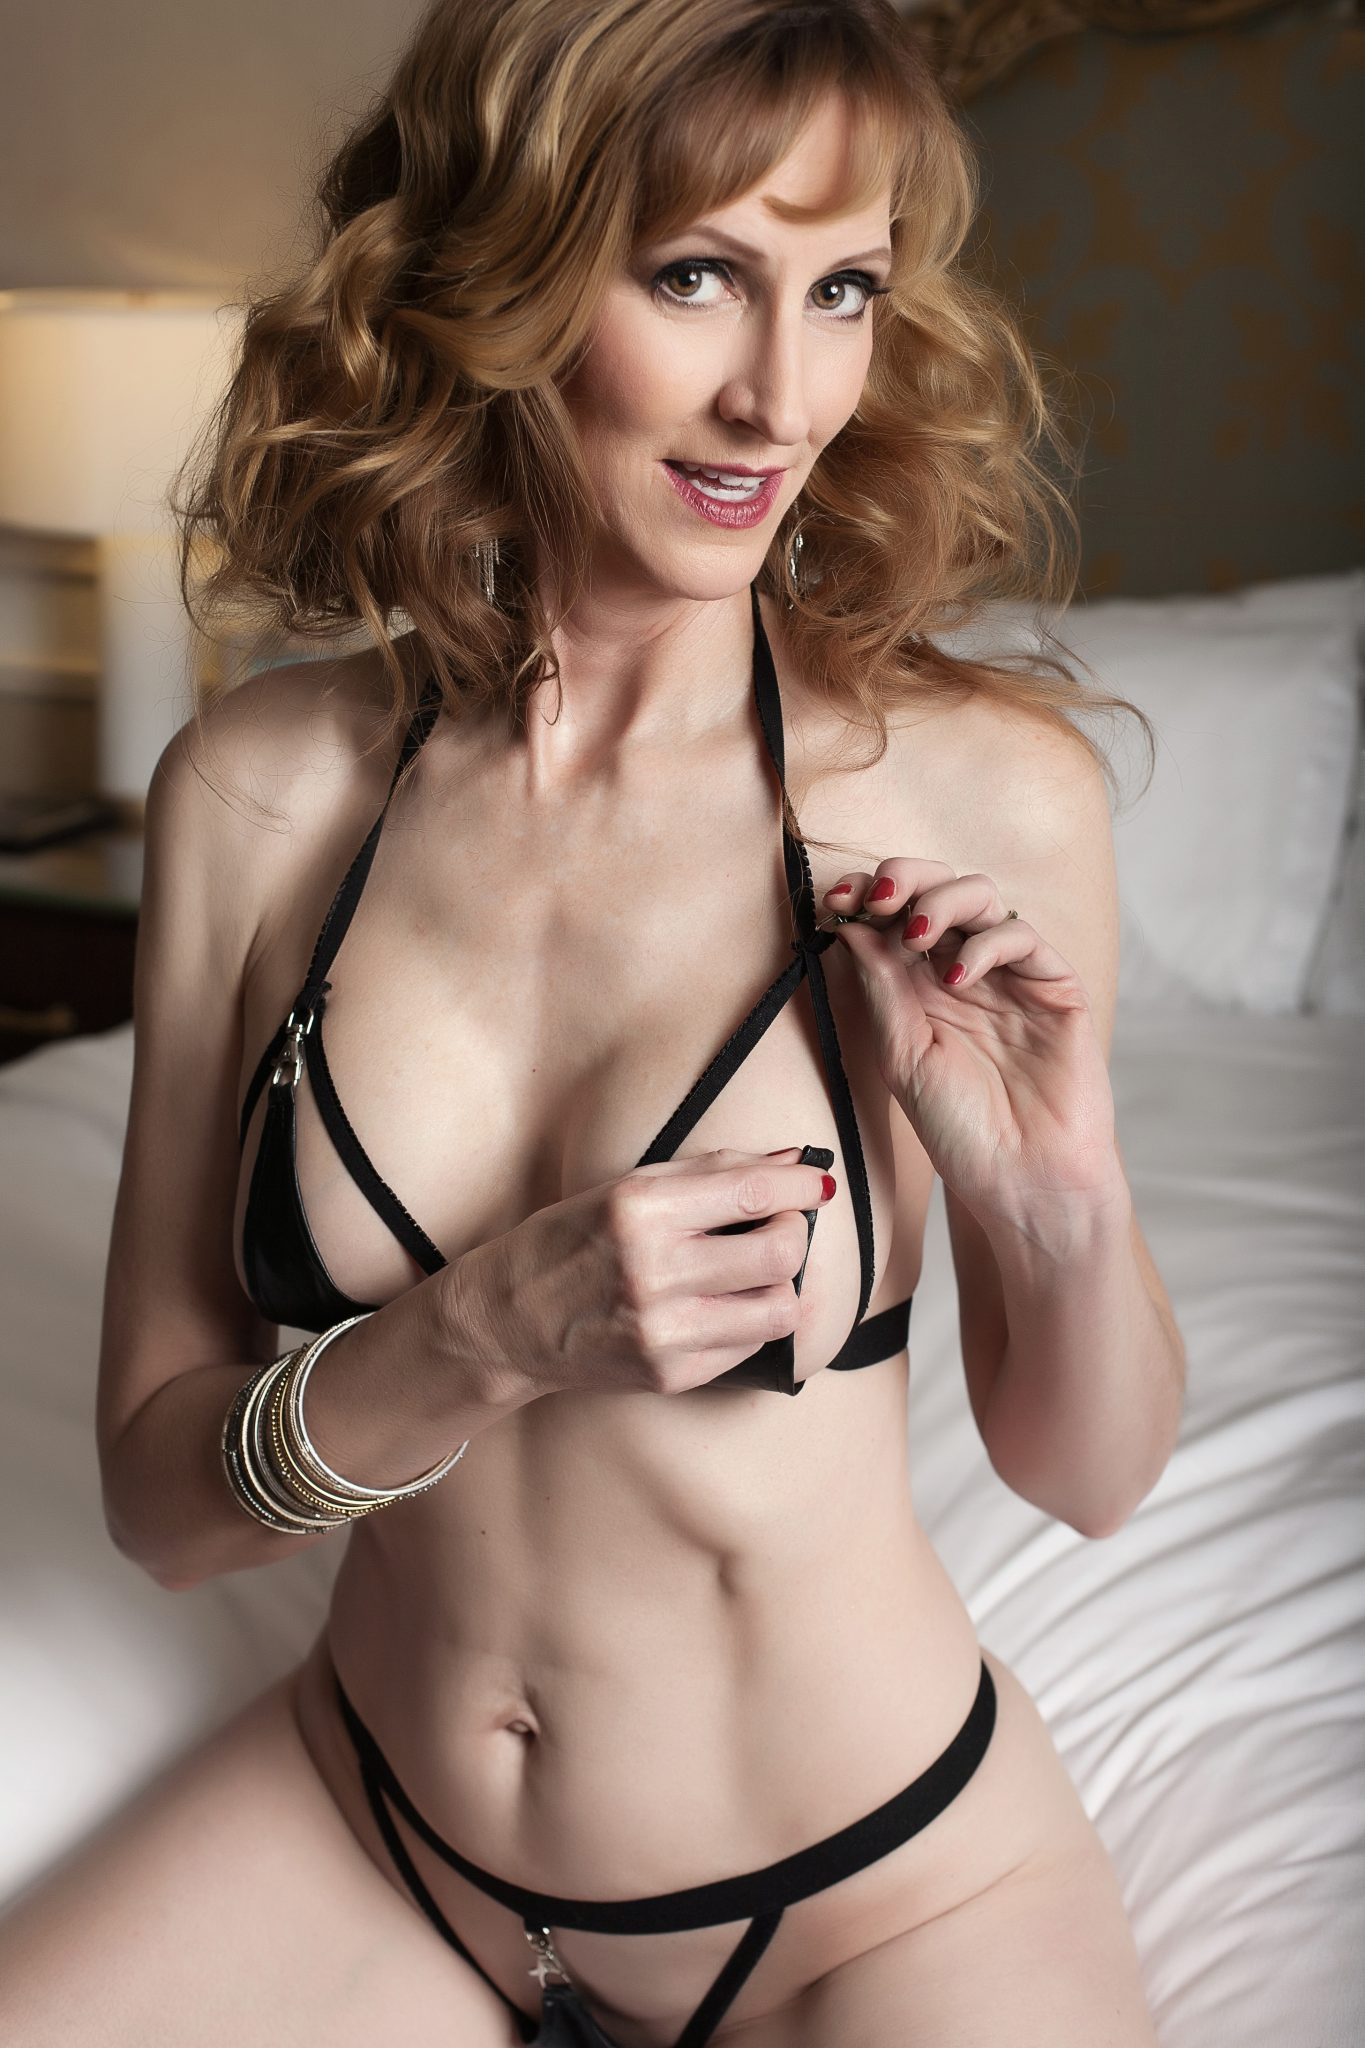 Flirt with the camera and use your lingerie to occupy your hands for boudoir photos.